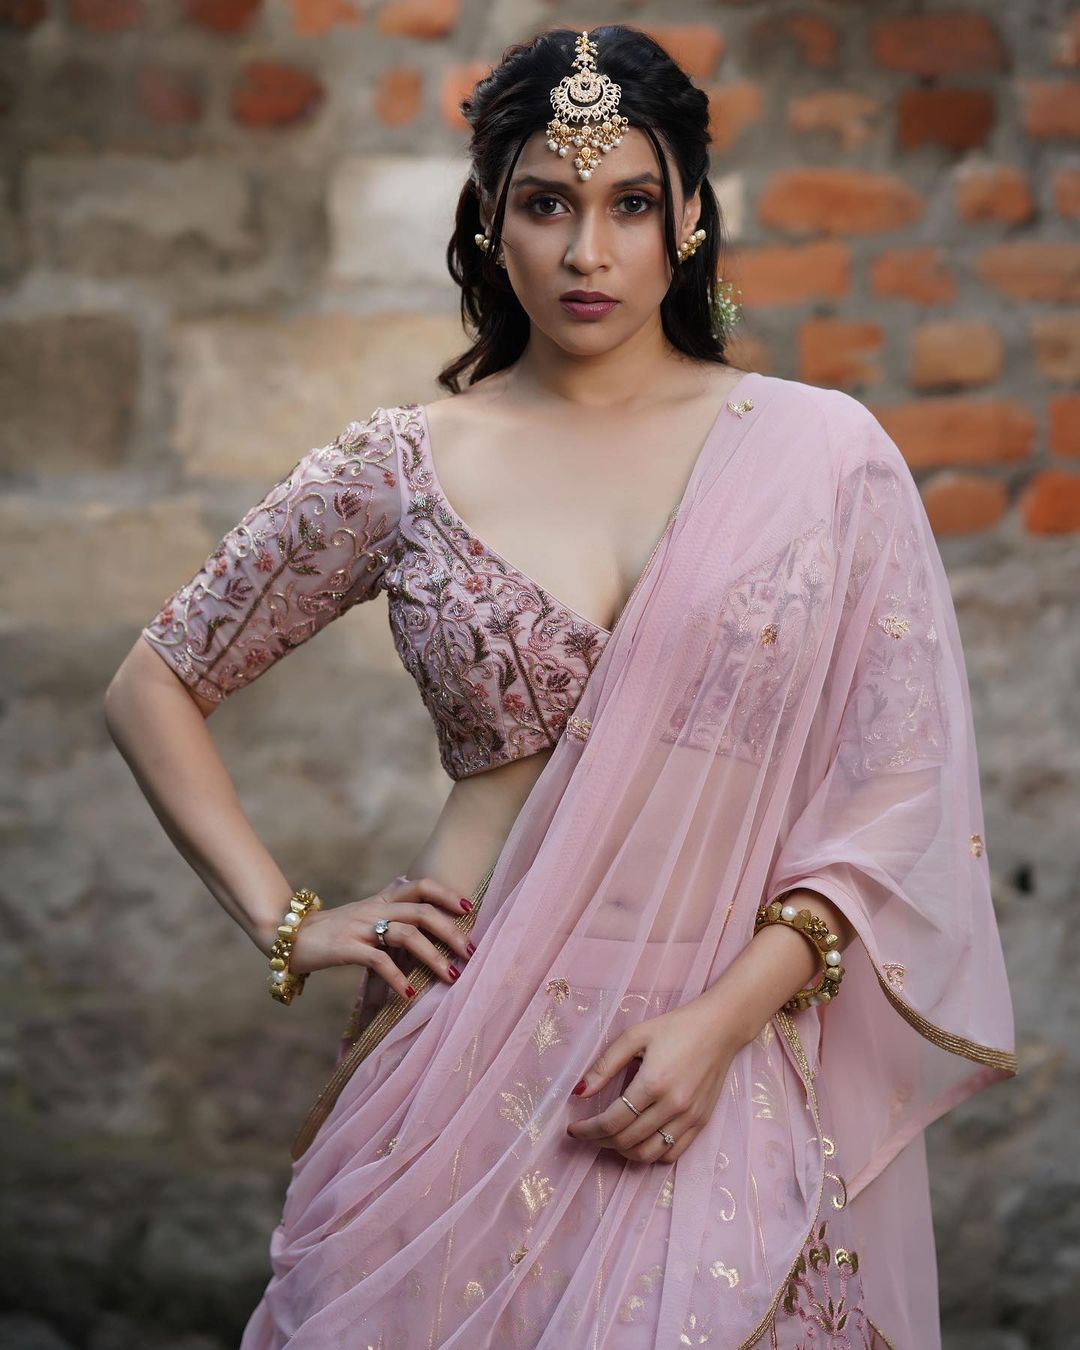 Mannara Chopra Instagram, Career, Facebook, Twitter, Family, Net Worth, Sister, Body Measurements, Age and Biography